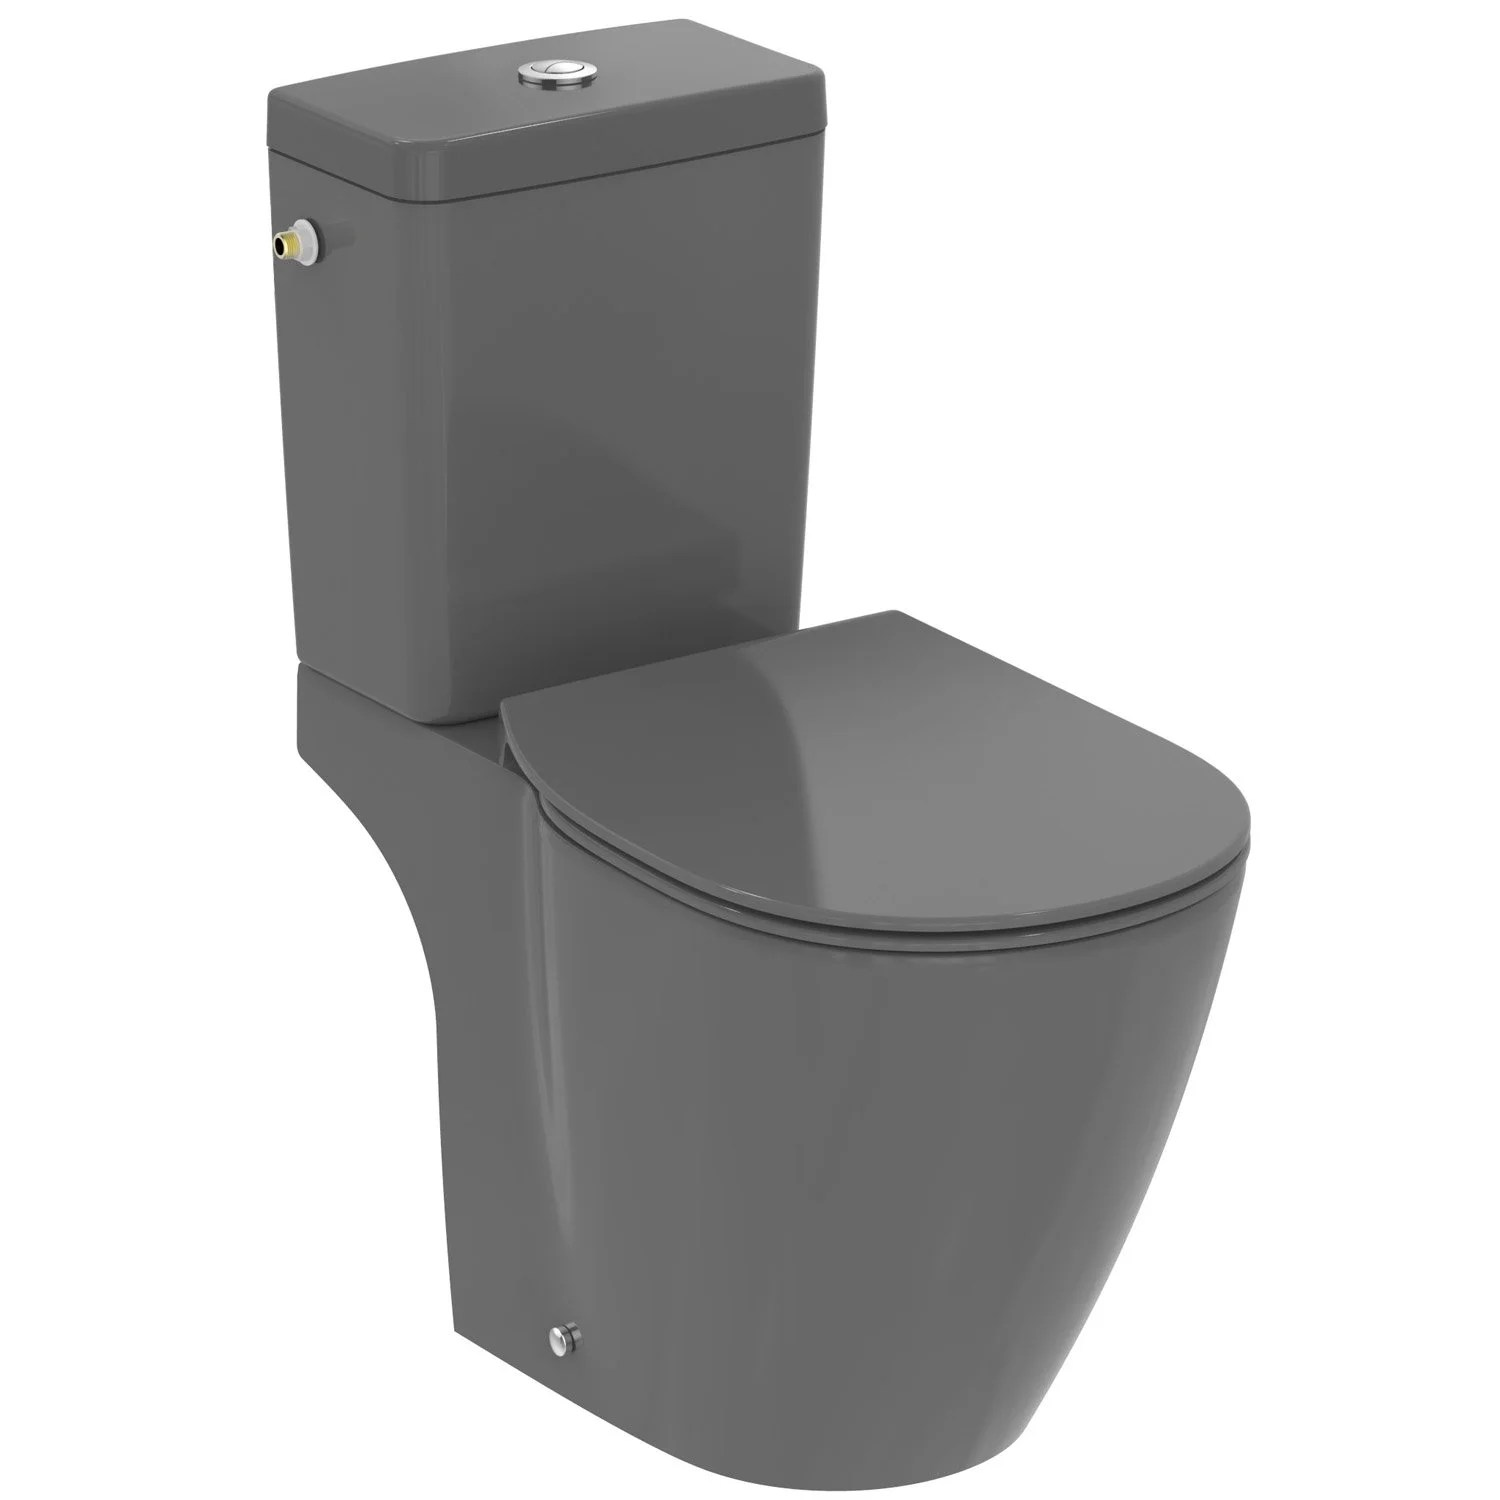 Wc Ideal Standard Leroy Merlin Pack Wc à Poser Sortie Horizontale Ideal Standard Aquablade